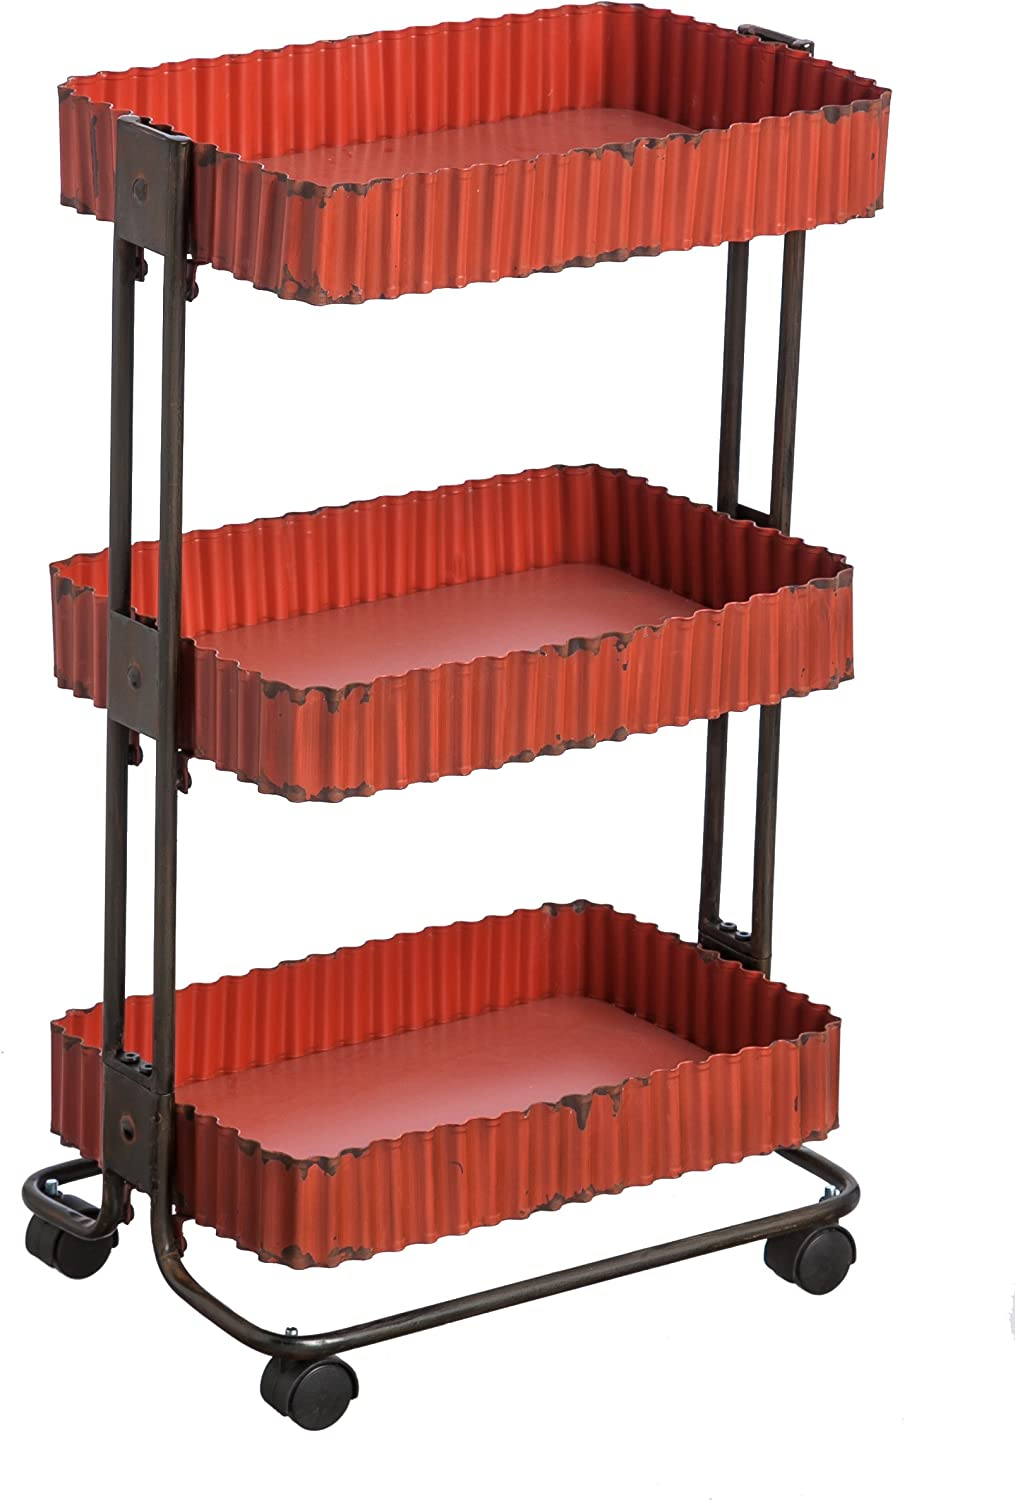 Cape Craftsmen Antique Red Corrugate Metal 3-Tier Cart with Wheels